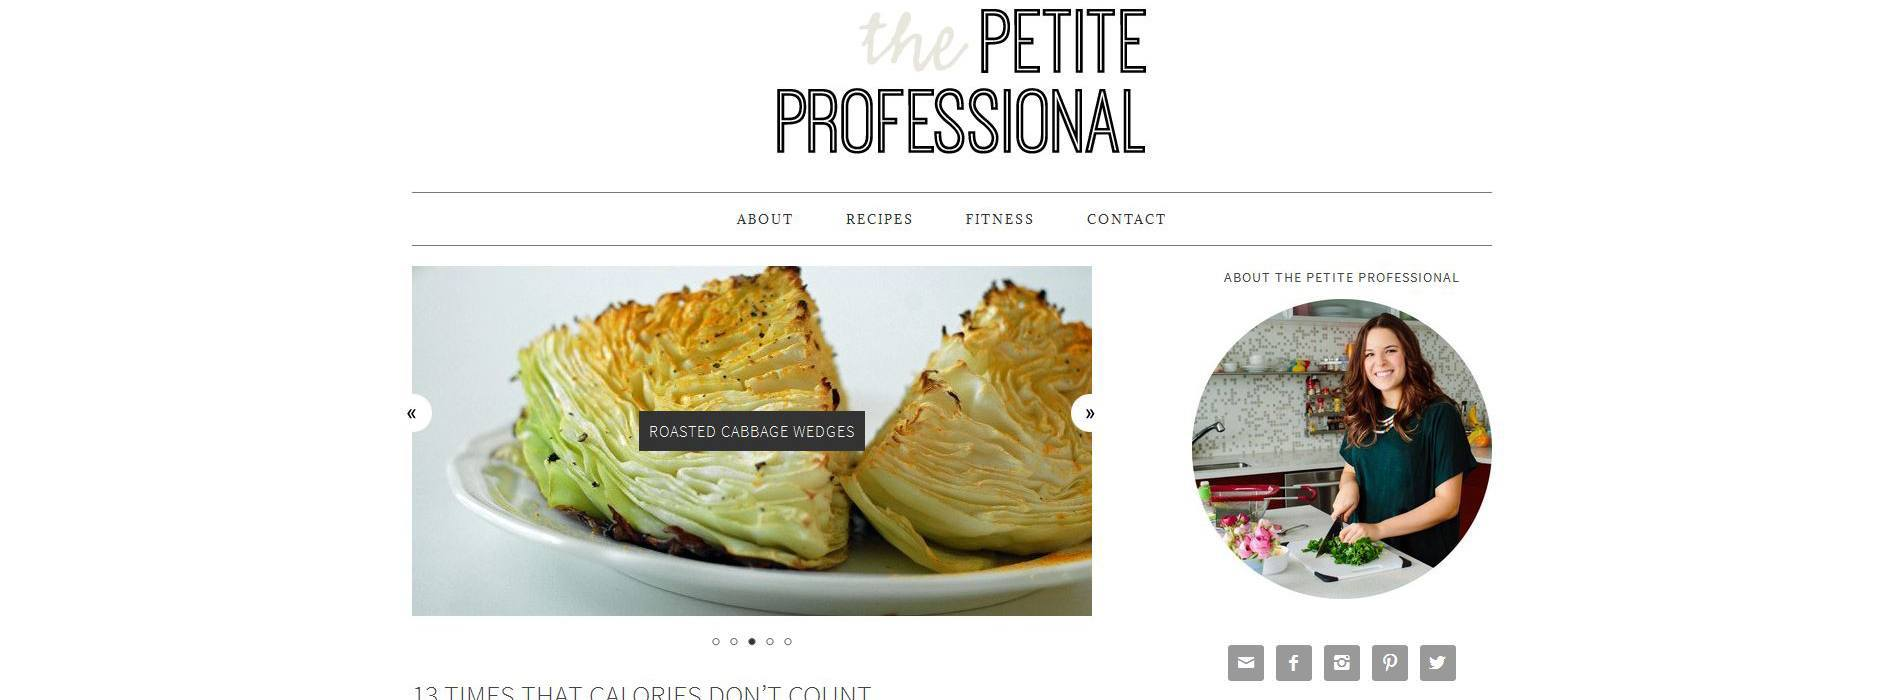 The Petite Professional Blog